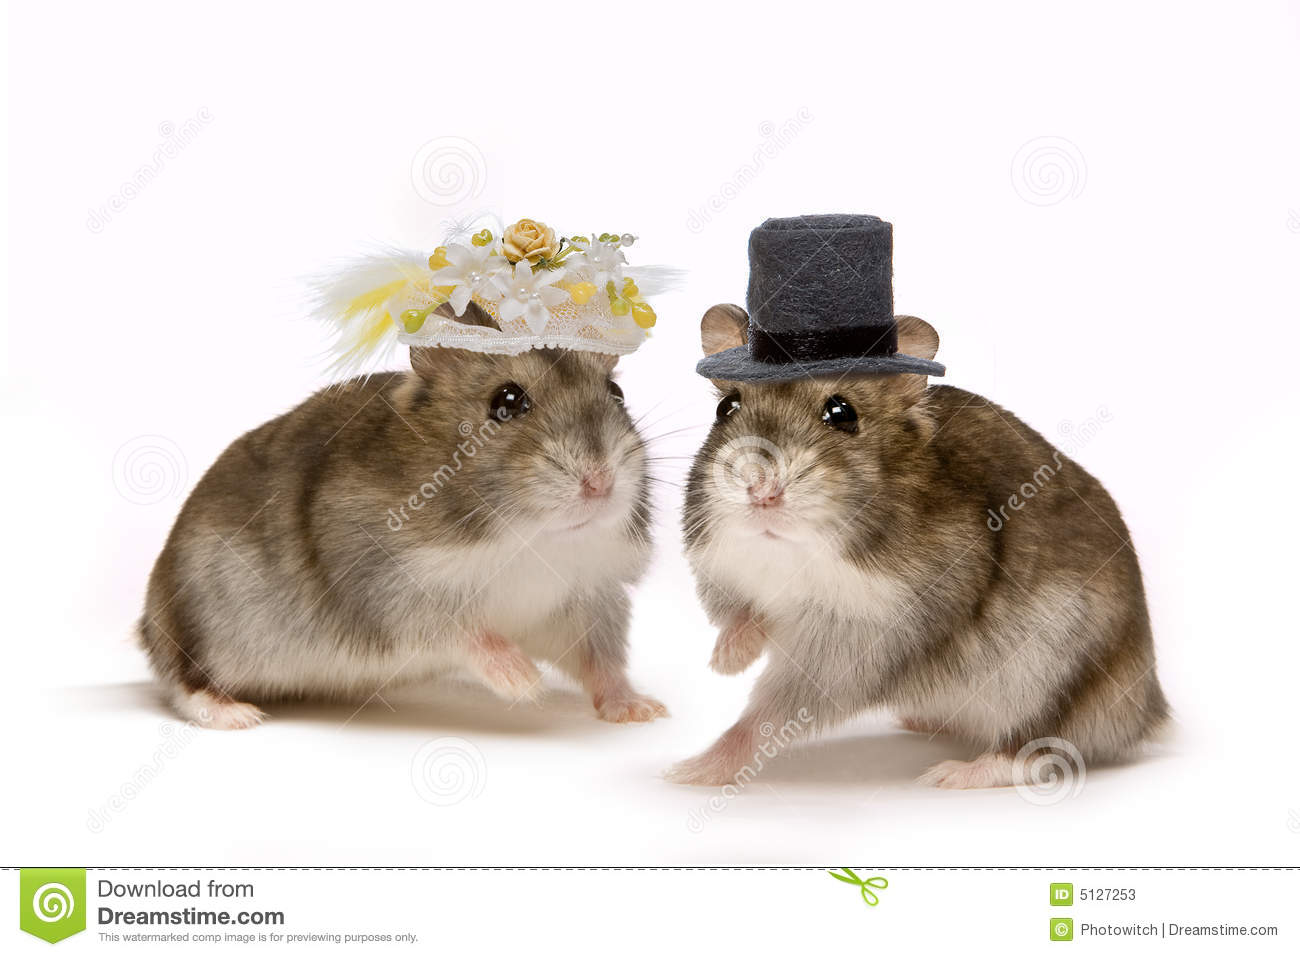 Two little hamsters wearing hats during their wedding ceremony.